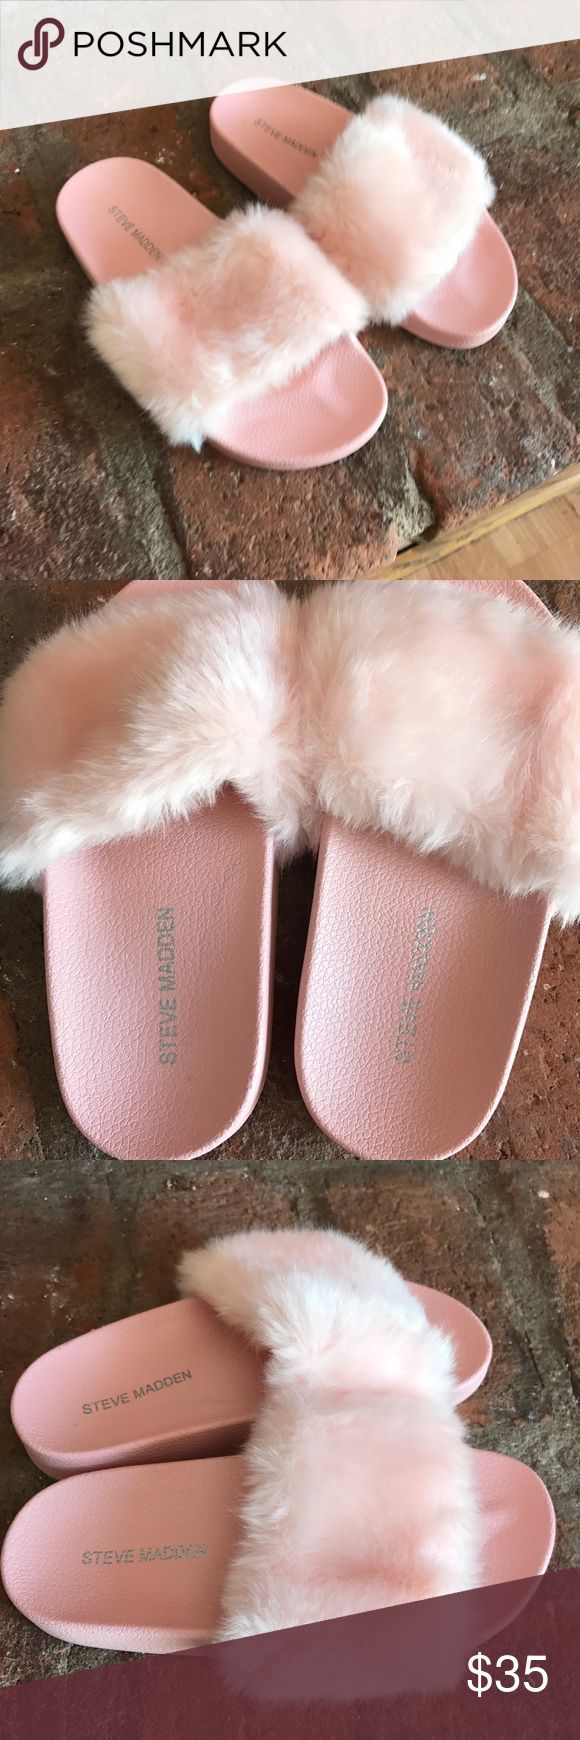 Steve Madden fuzzy slippers kids❗️ In great condition super cute kids Steve Madden slippers Steve Madden Shoes Sandals & Flip Flops